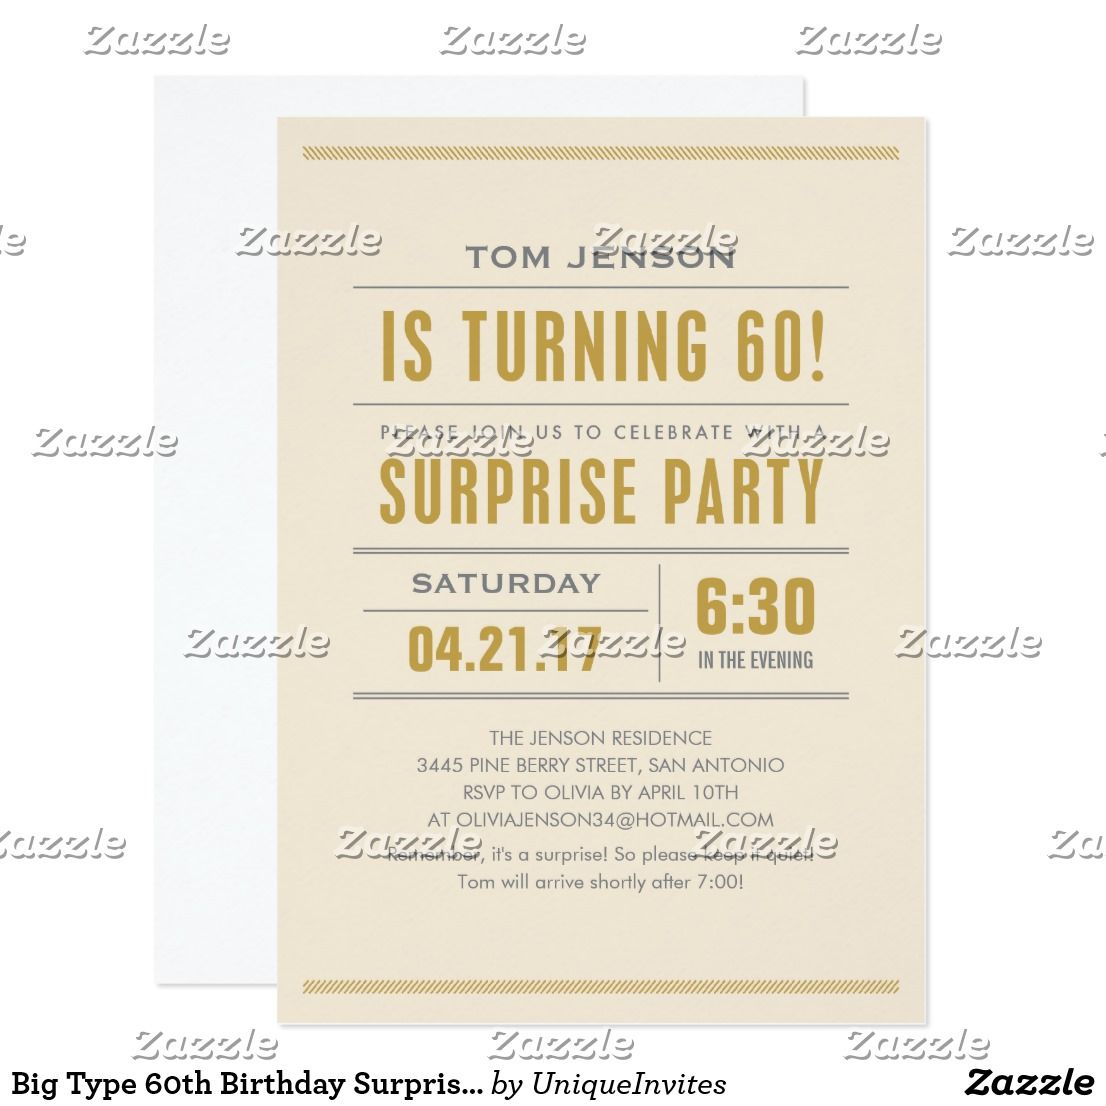 Big Type 60th Birthday Surprise Party Invitations | Surprise party ...